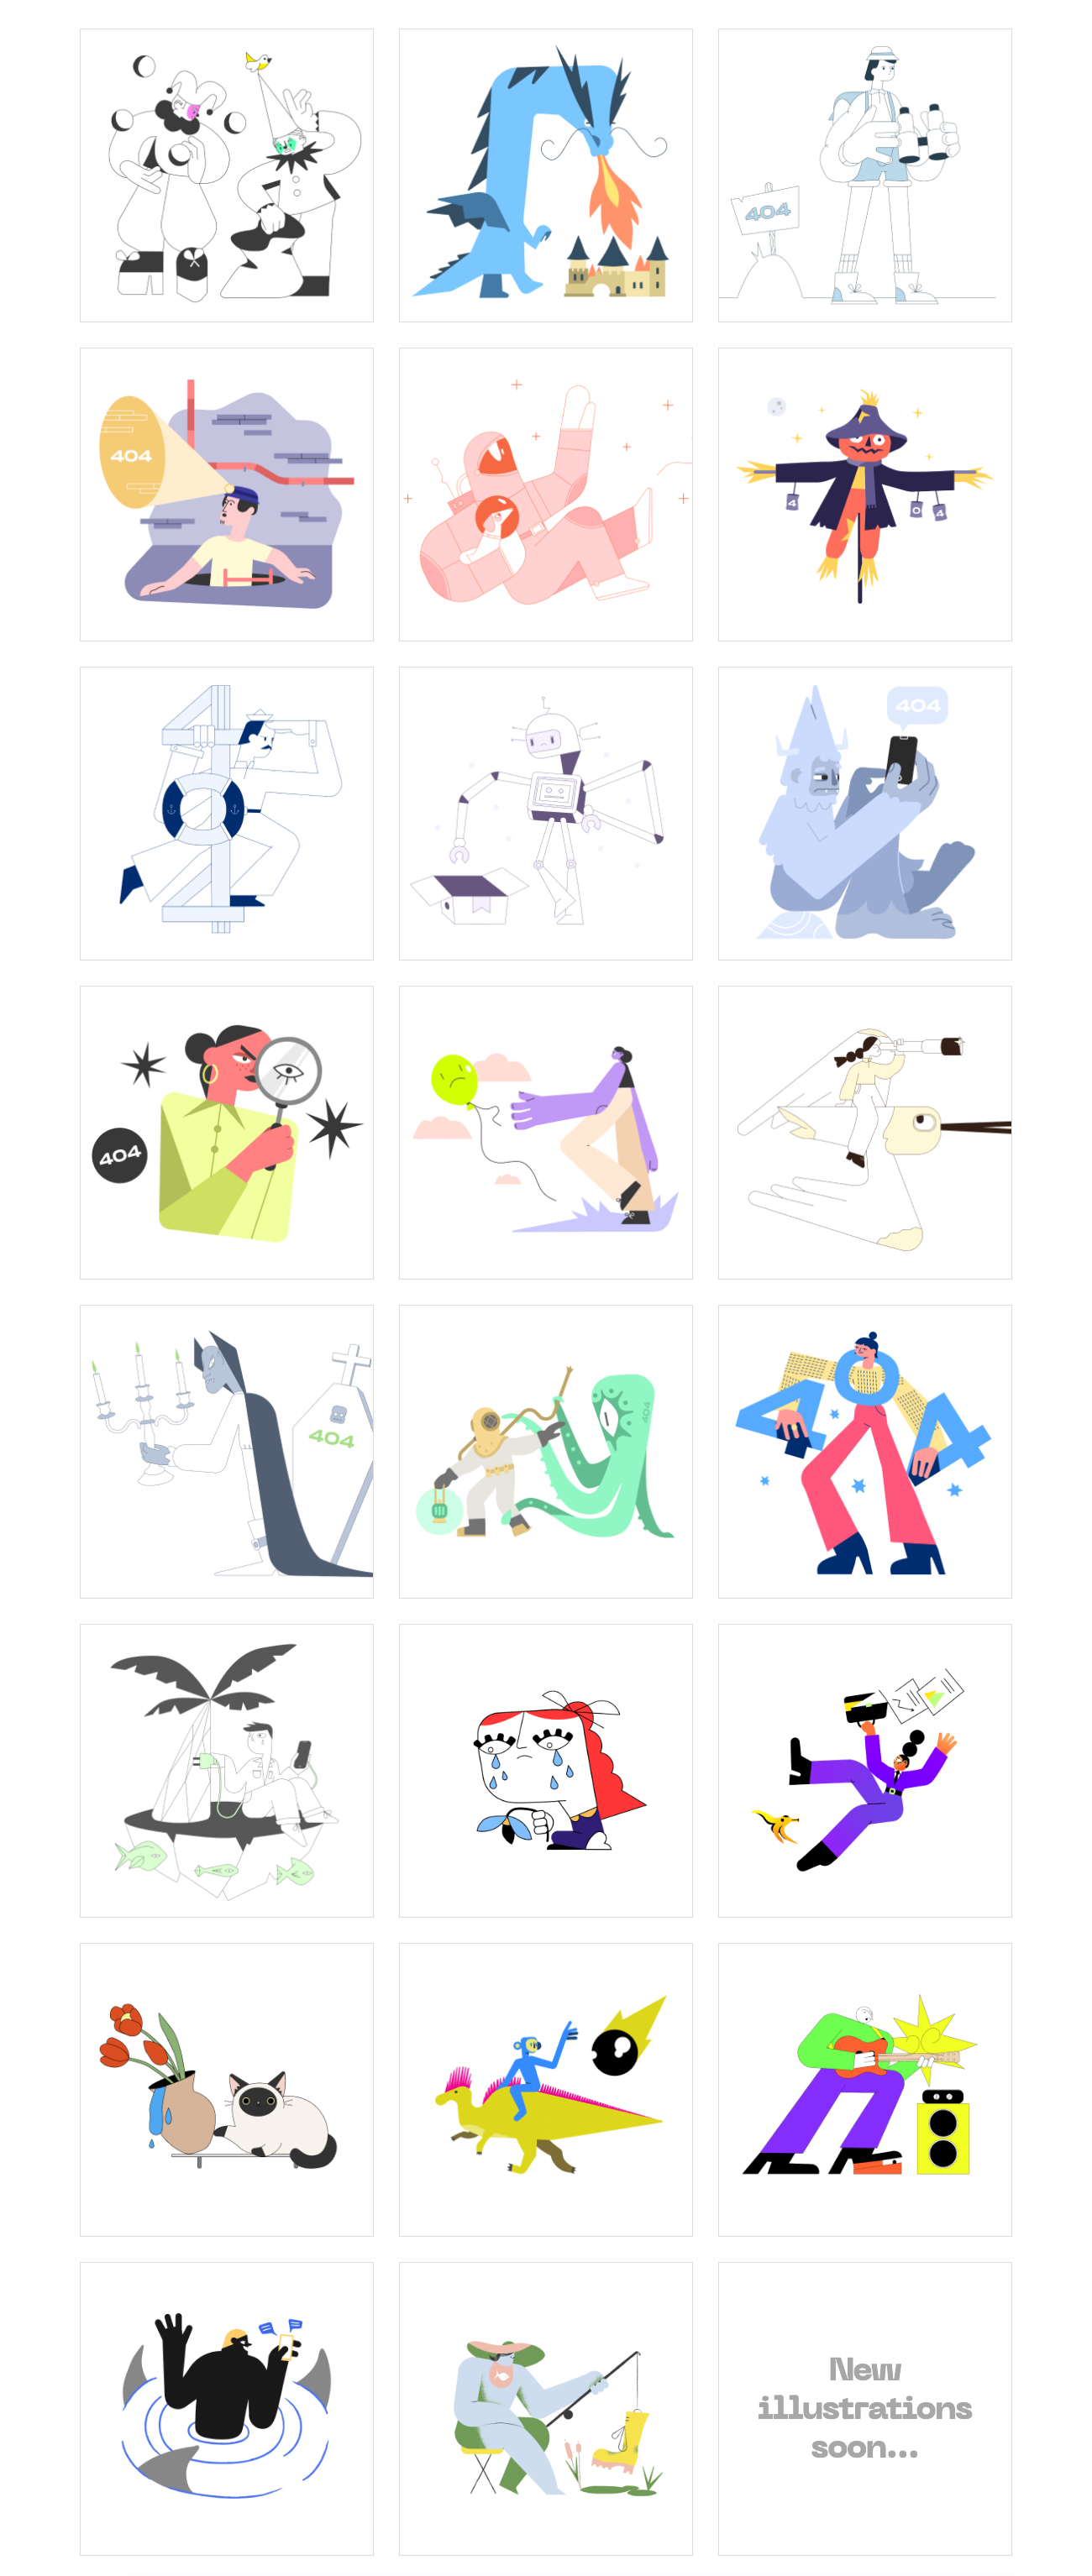 404 Illustrations for Figma & Sketch - A growing collection of open-source illustrations for your page-not-found message. Choose a scene to inform the user of the error occurred with futuristic elements and cute characters. All scenes are compatible with Sketch and Figma.